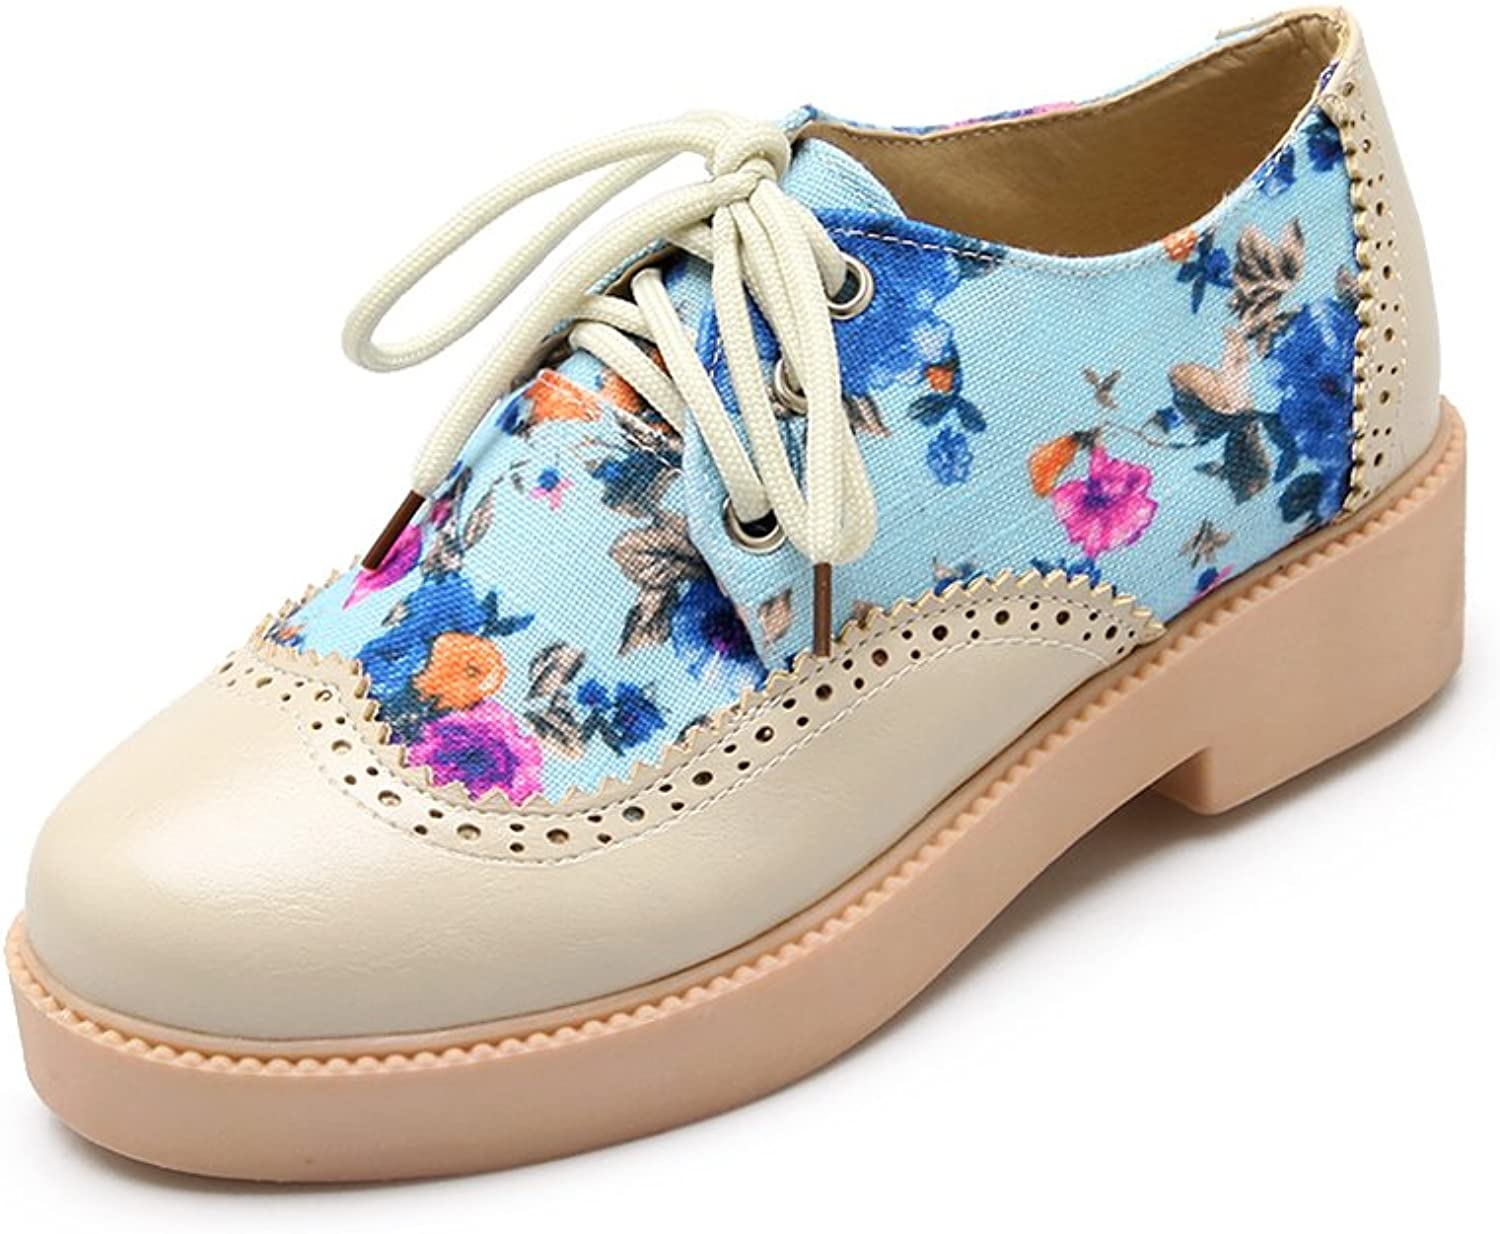 Lucksender Womens Fashion Sweet Prints Low Heel Lace Up Oxfords shoes